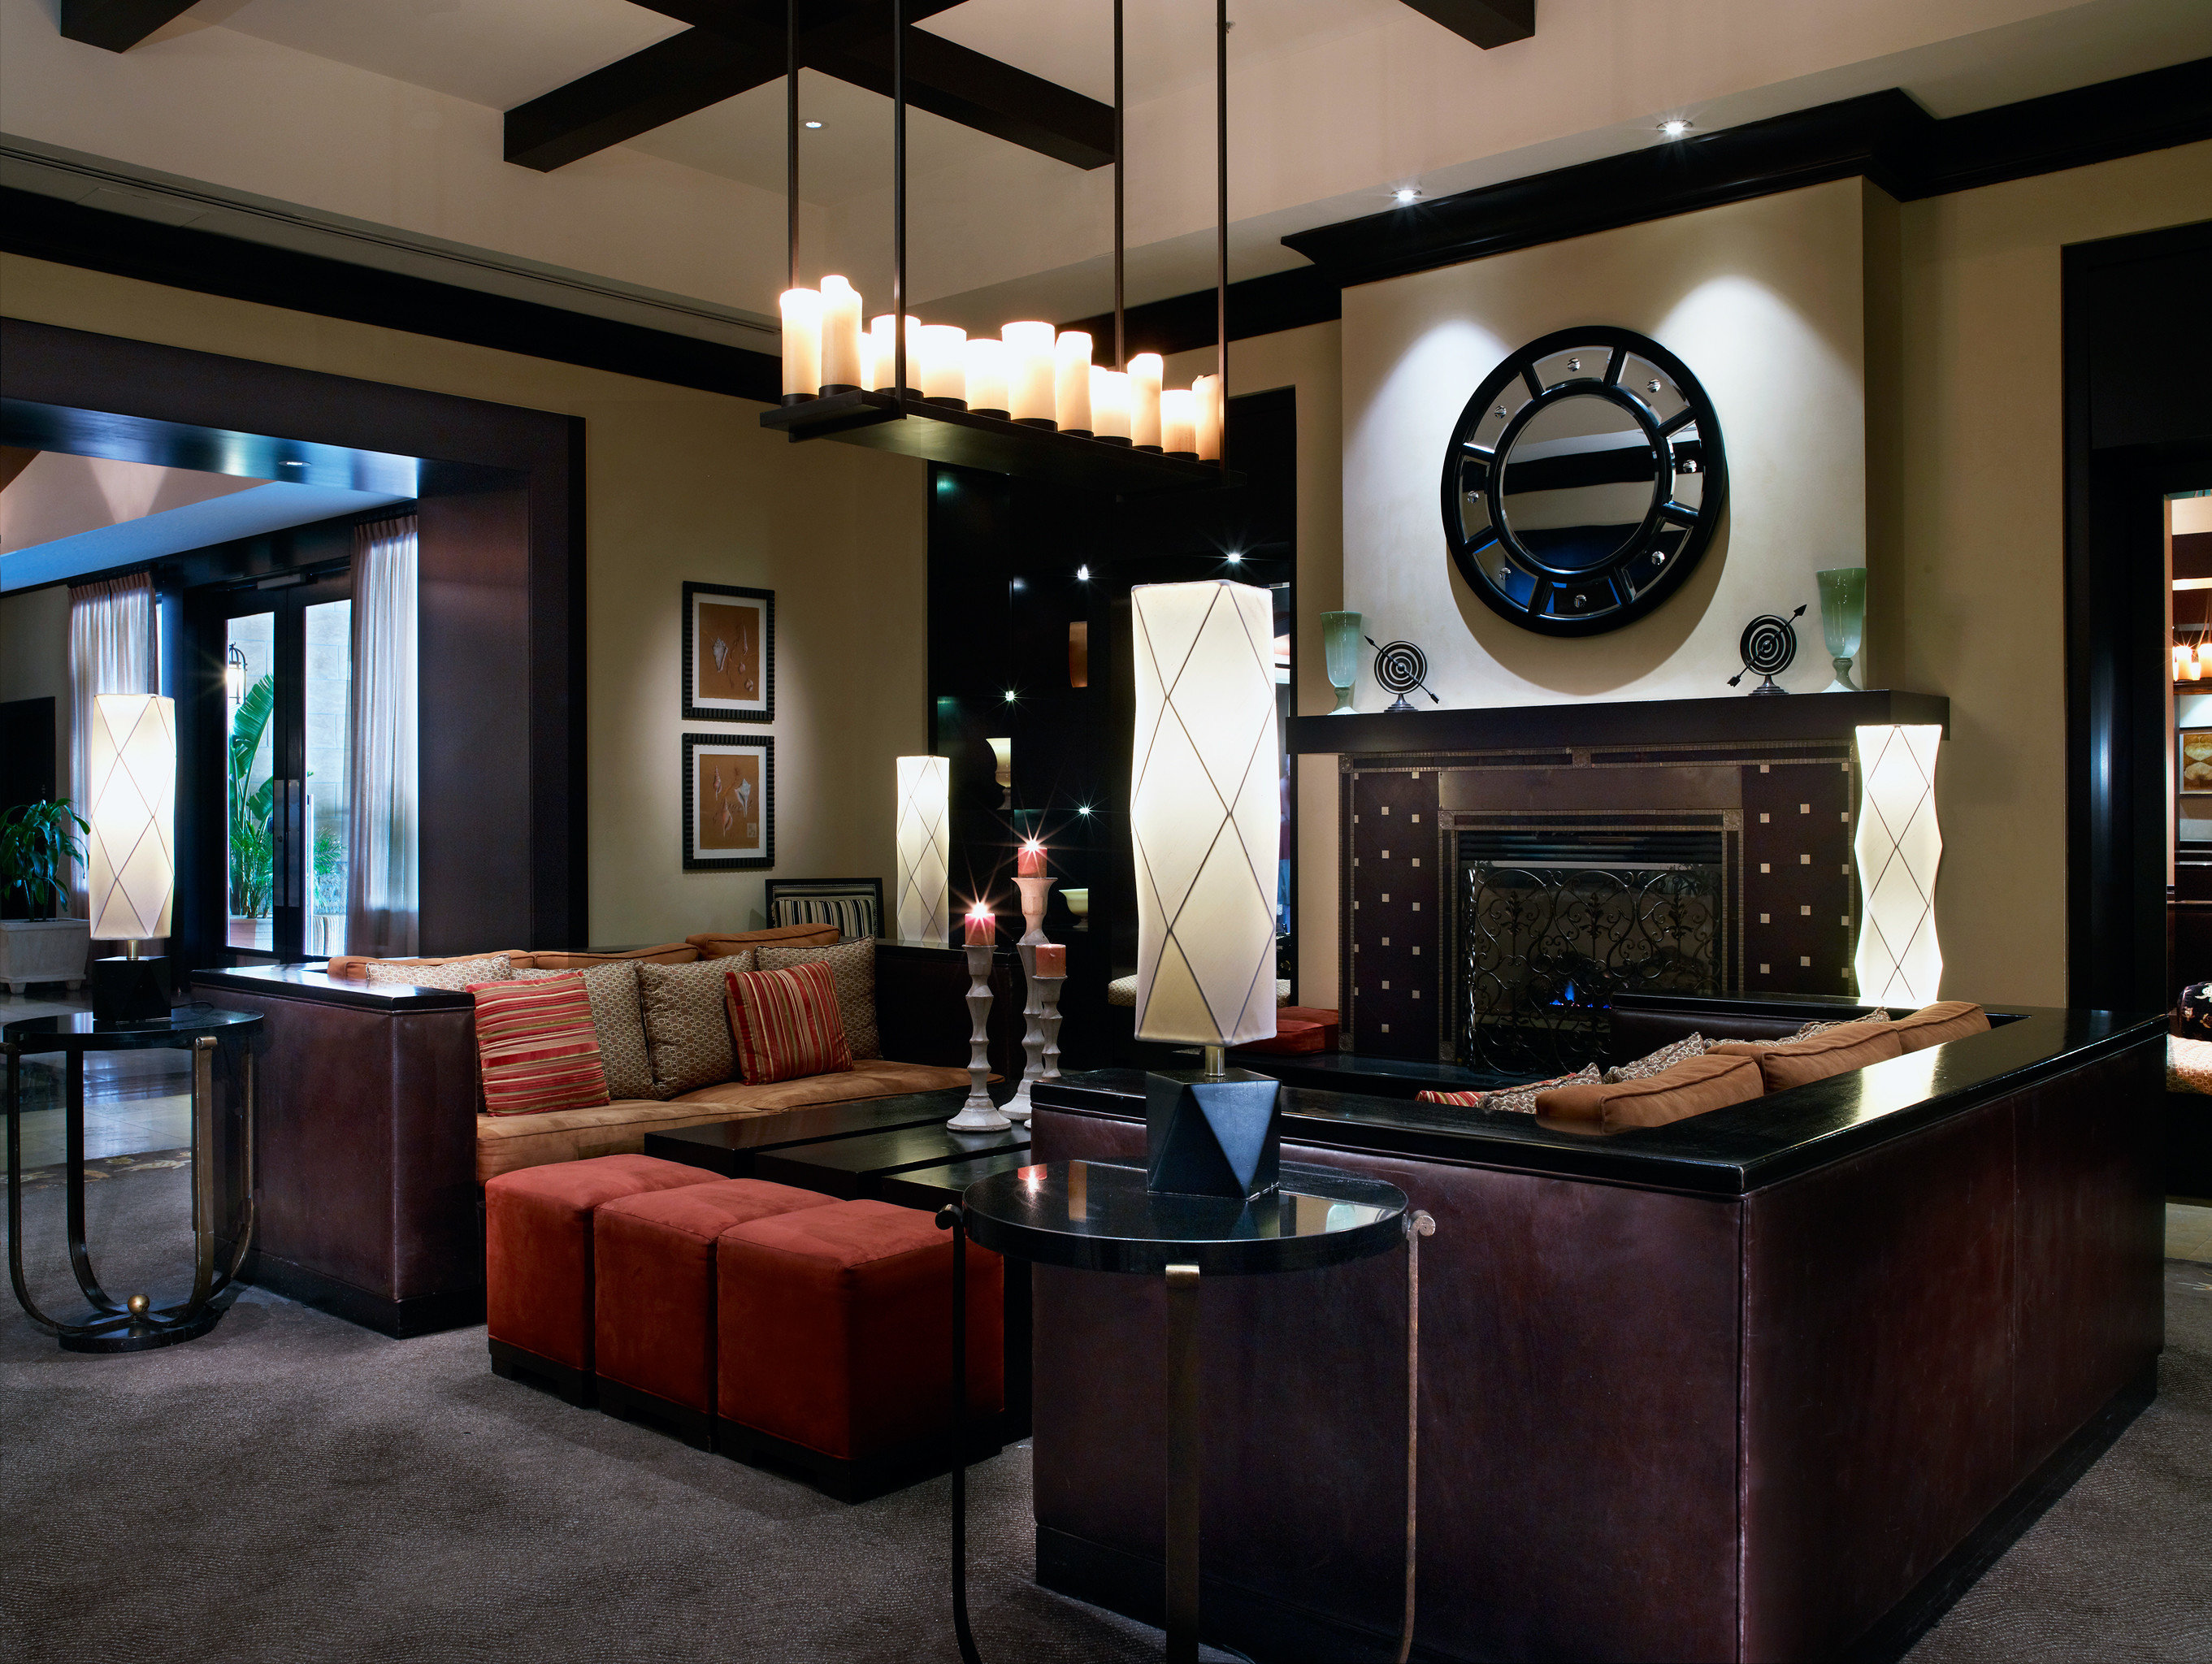 Fireplace Hotels Lobby Lounge Modern property living room home recreation room lighting